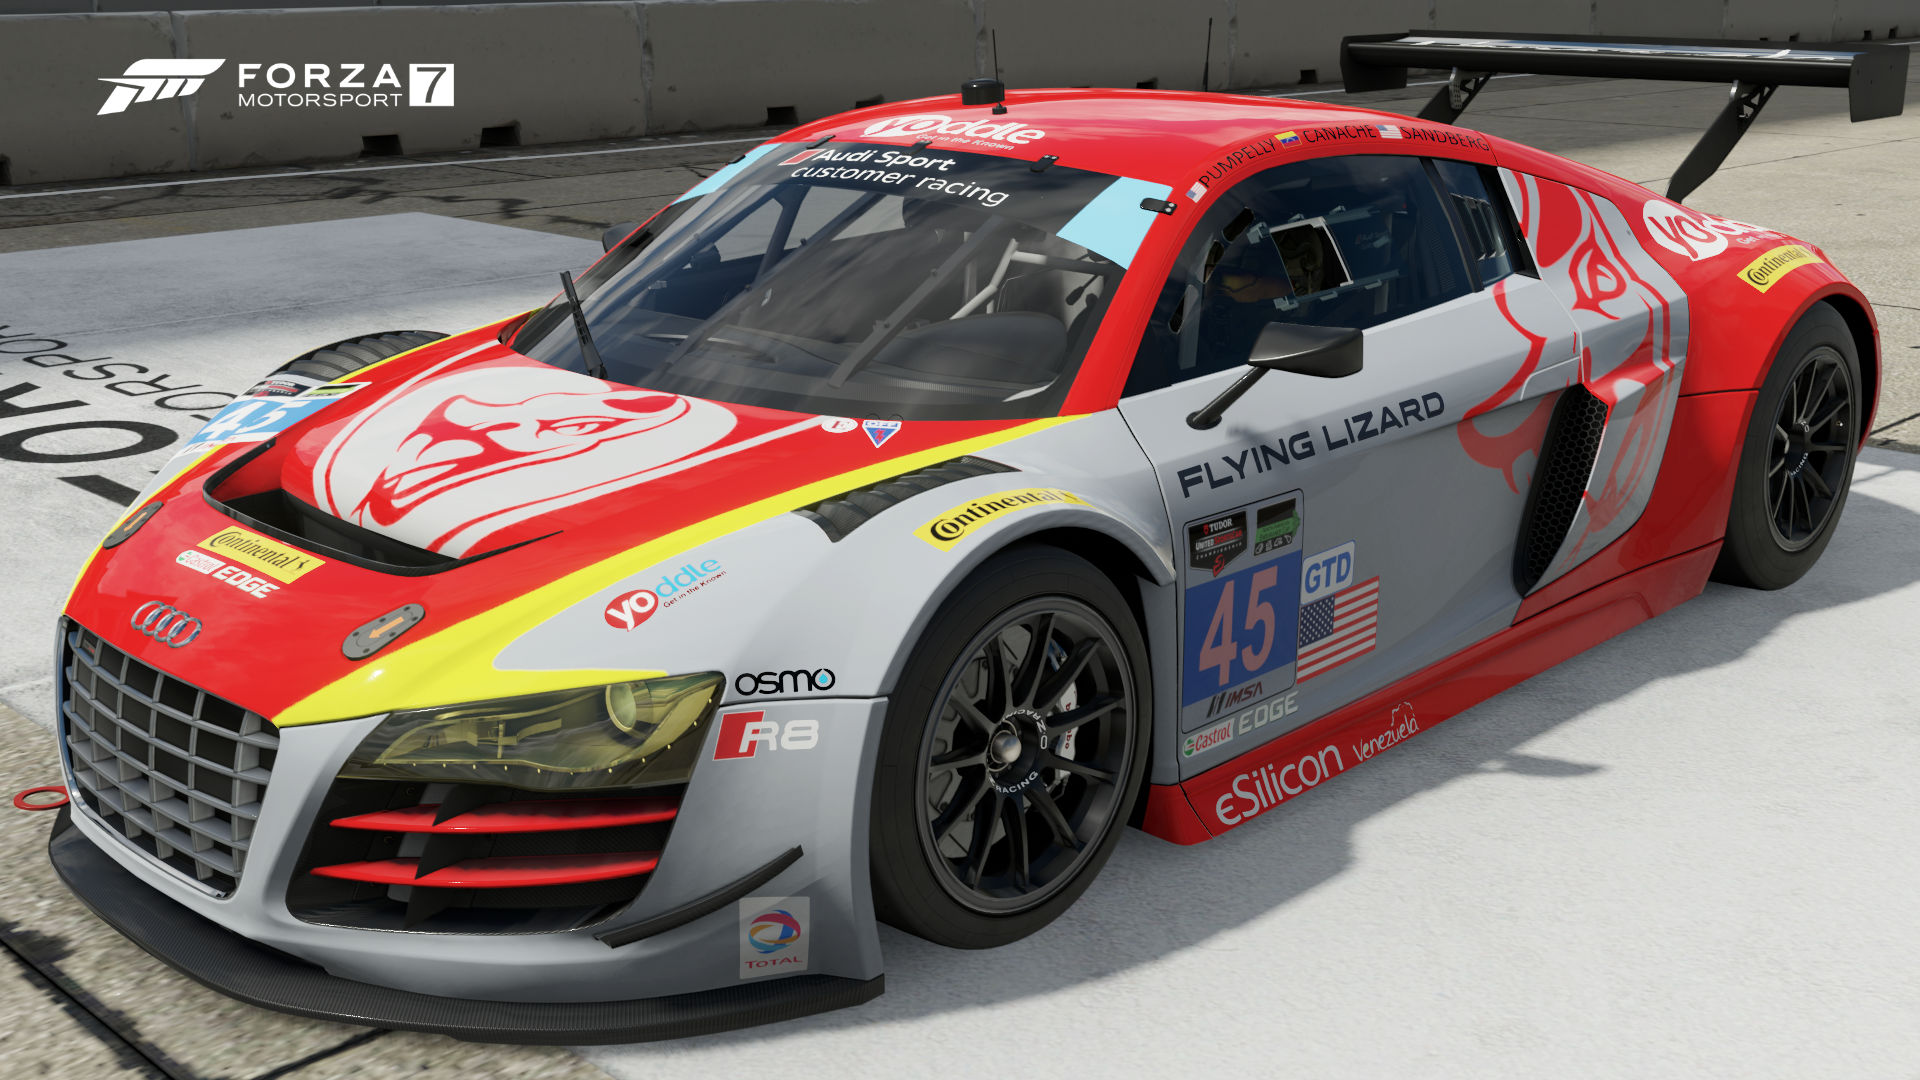 audi 45 flying lizard motorsports r8 lms ultra forza motorsport wiki fandom powered by wikia. Black Bedroom Furniture Sets. Home Design Ideas